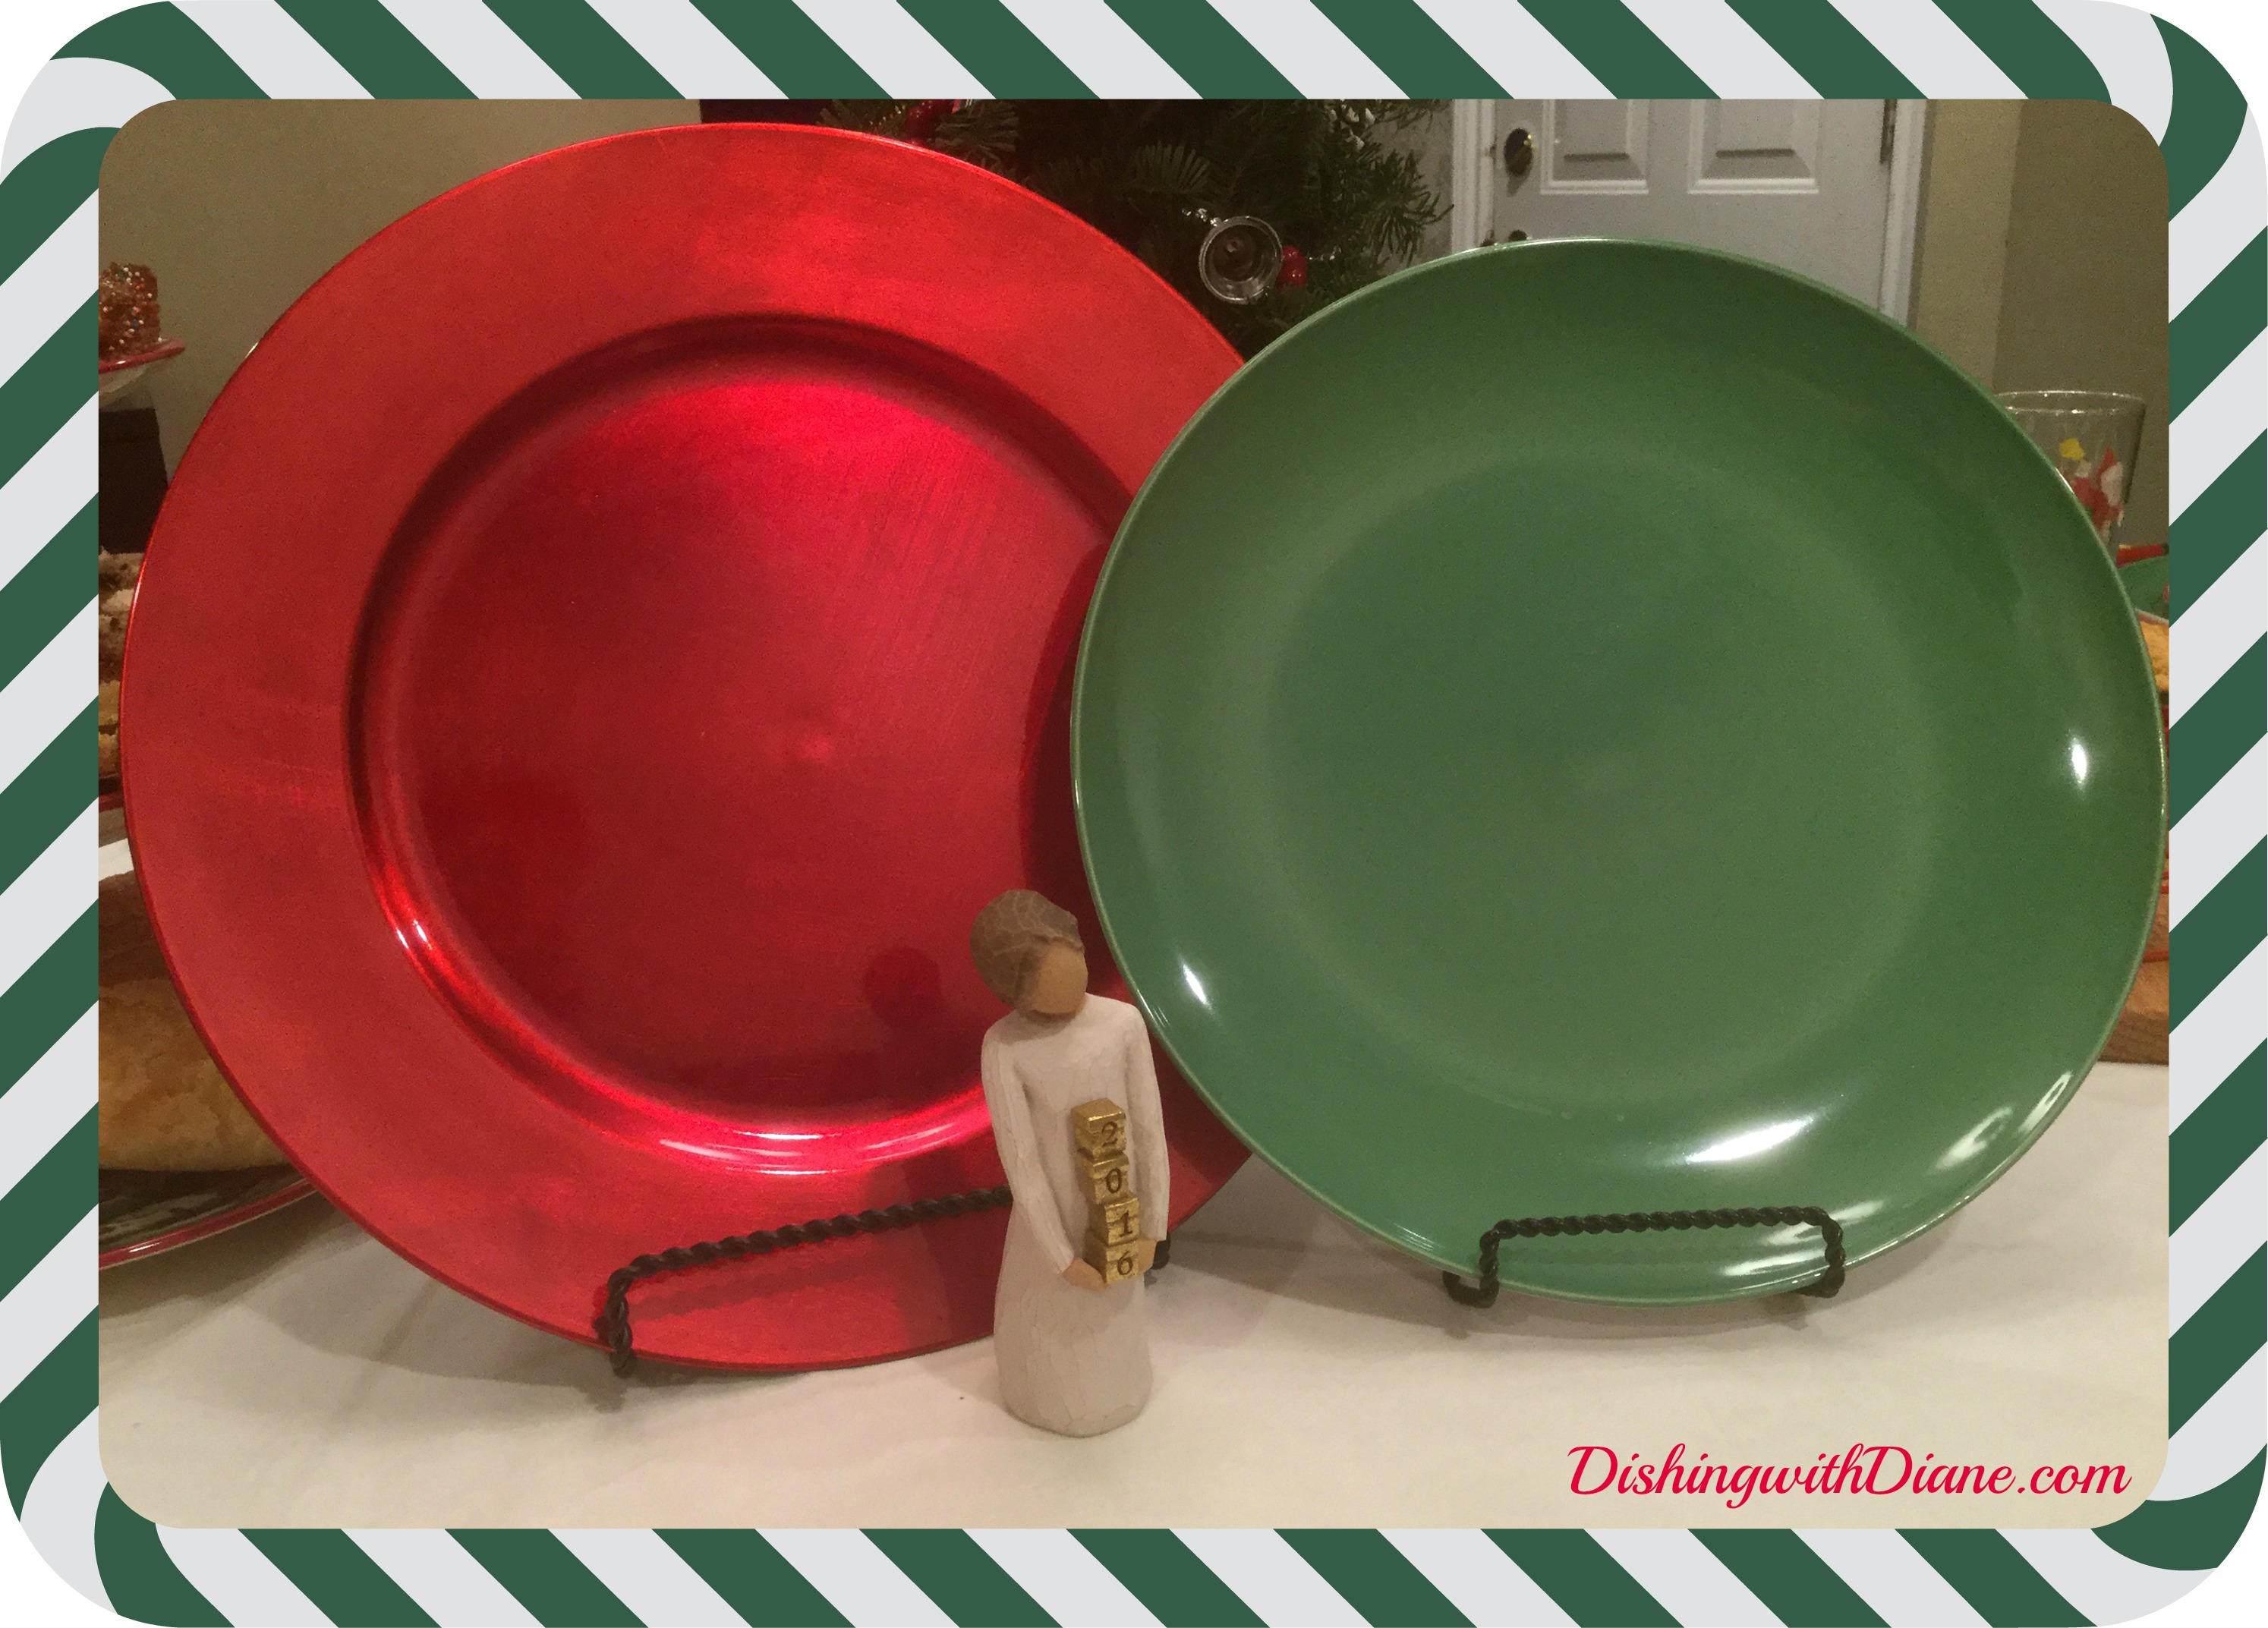 2016-12-26-22-33-45-charger-and-plate